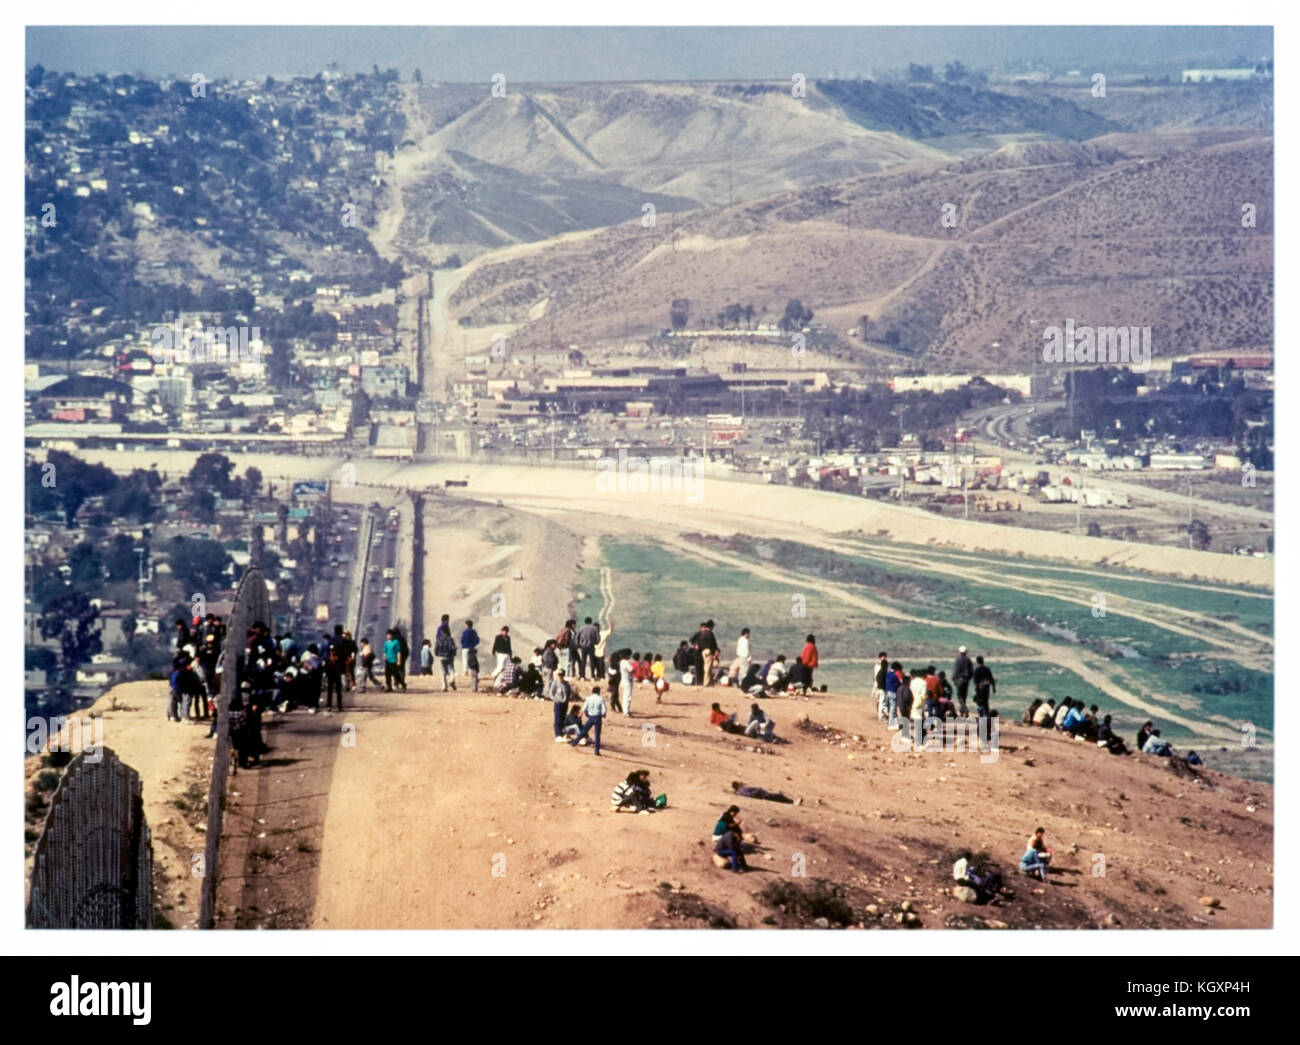 US-Mexico international border between Tijuana, Mexico (left) and San Diego, California (right); illegal immigrants Stock Photo